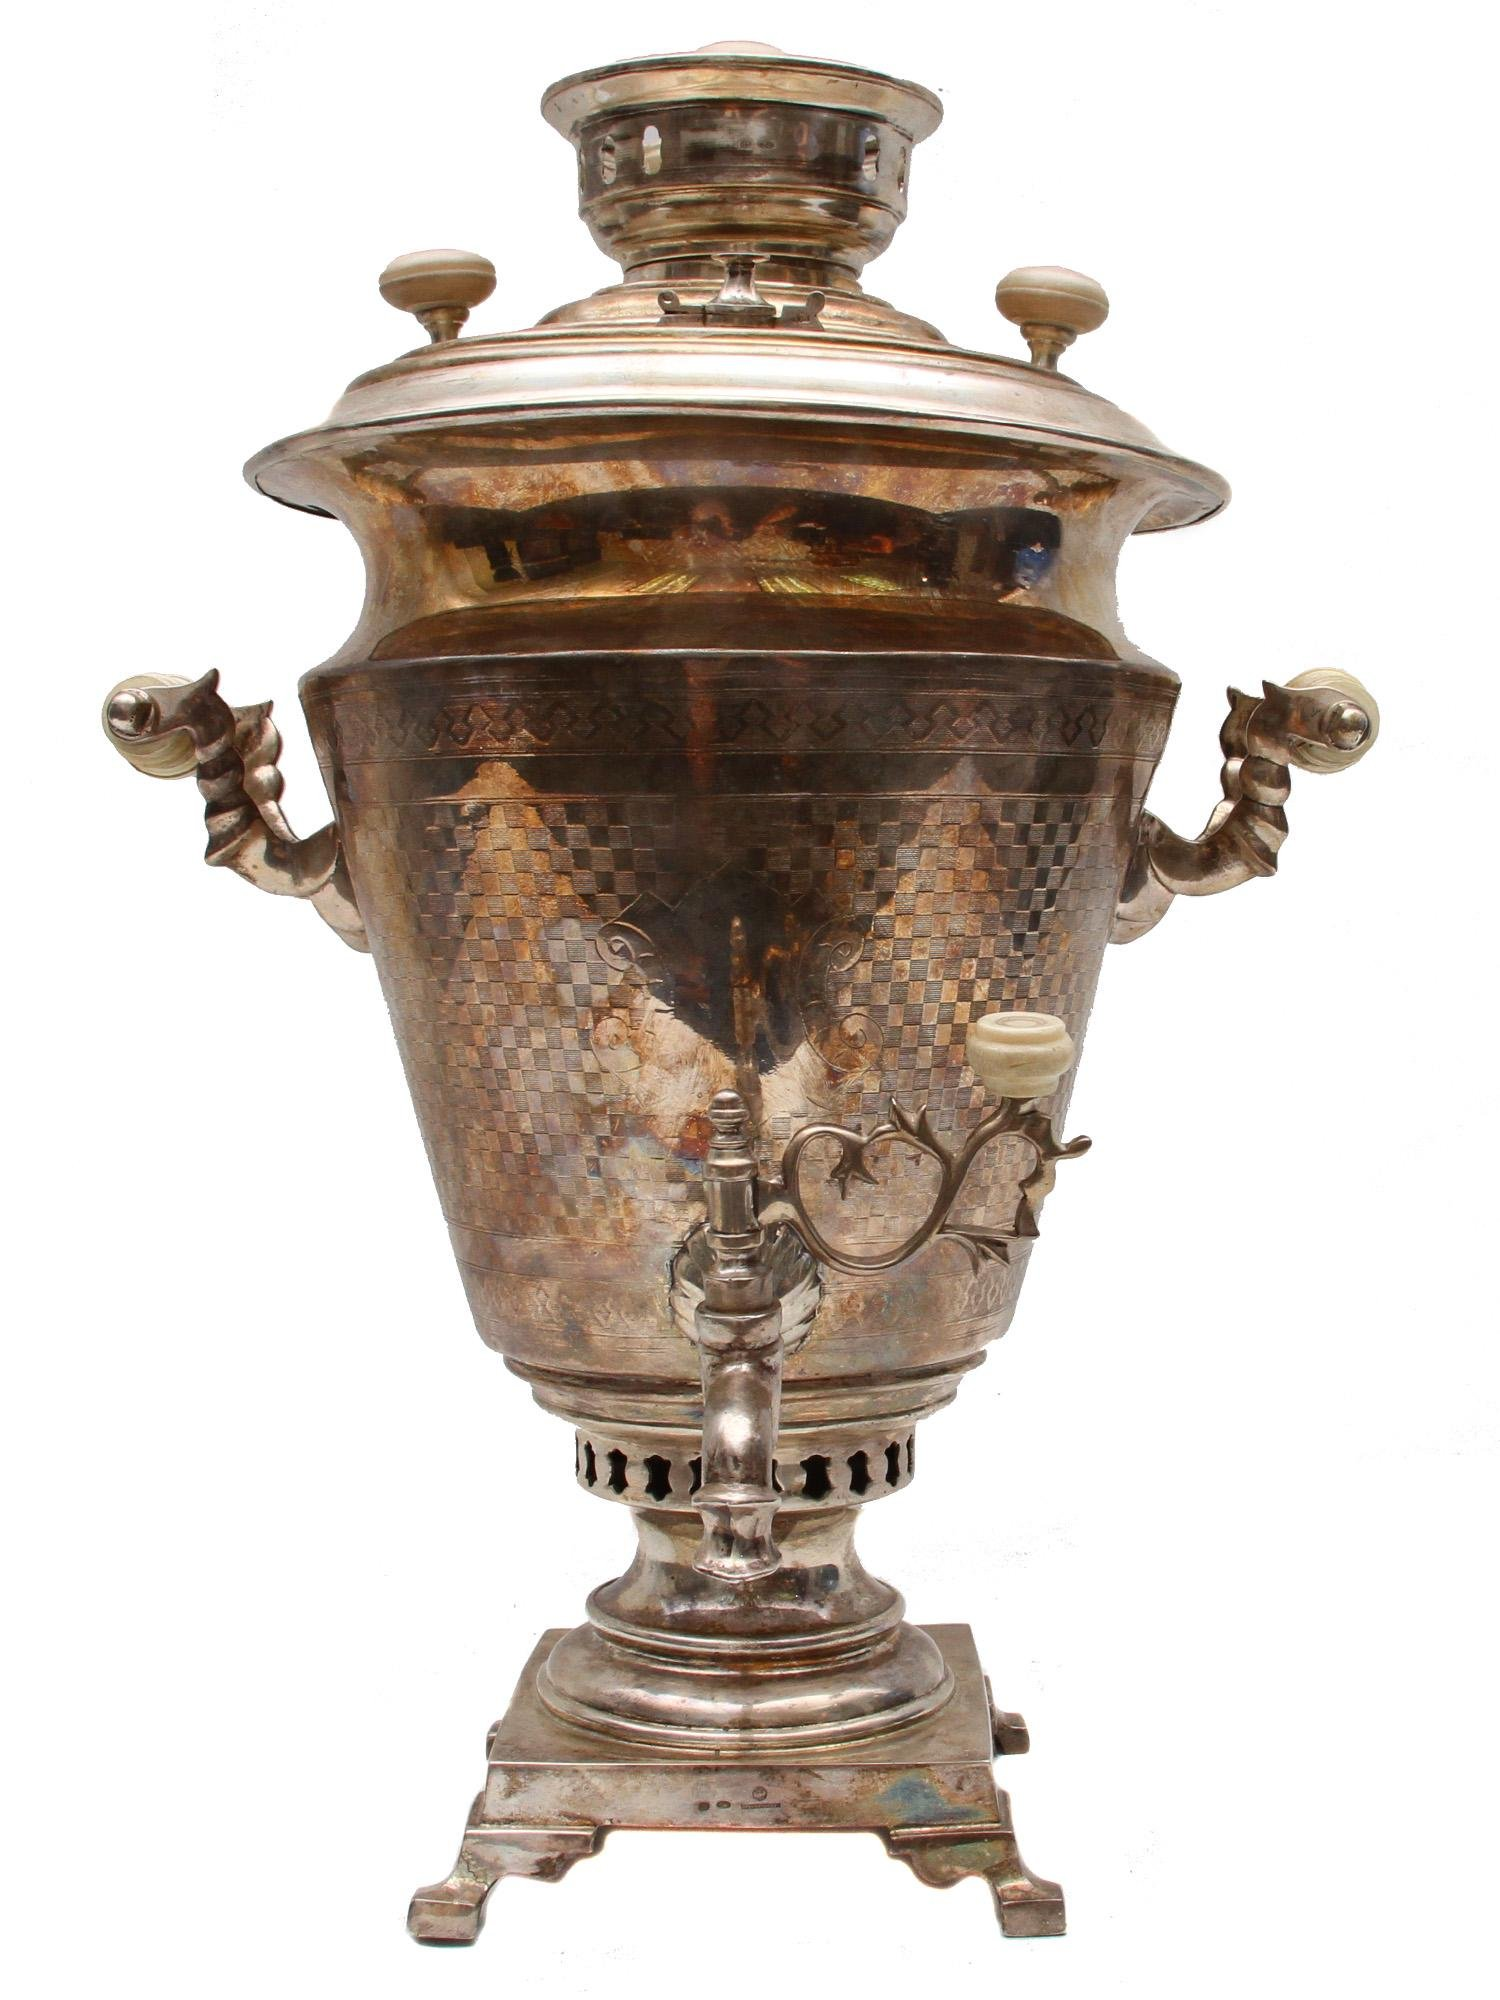 A LARGE RUSSIAN SILVER SAMOVAR BY OVCHINNIKOV